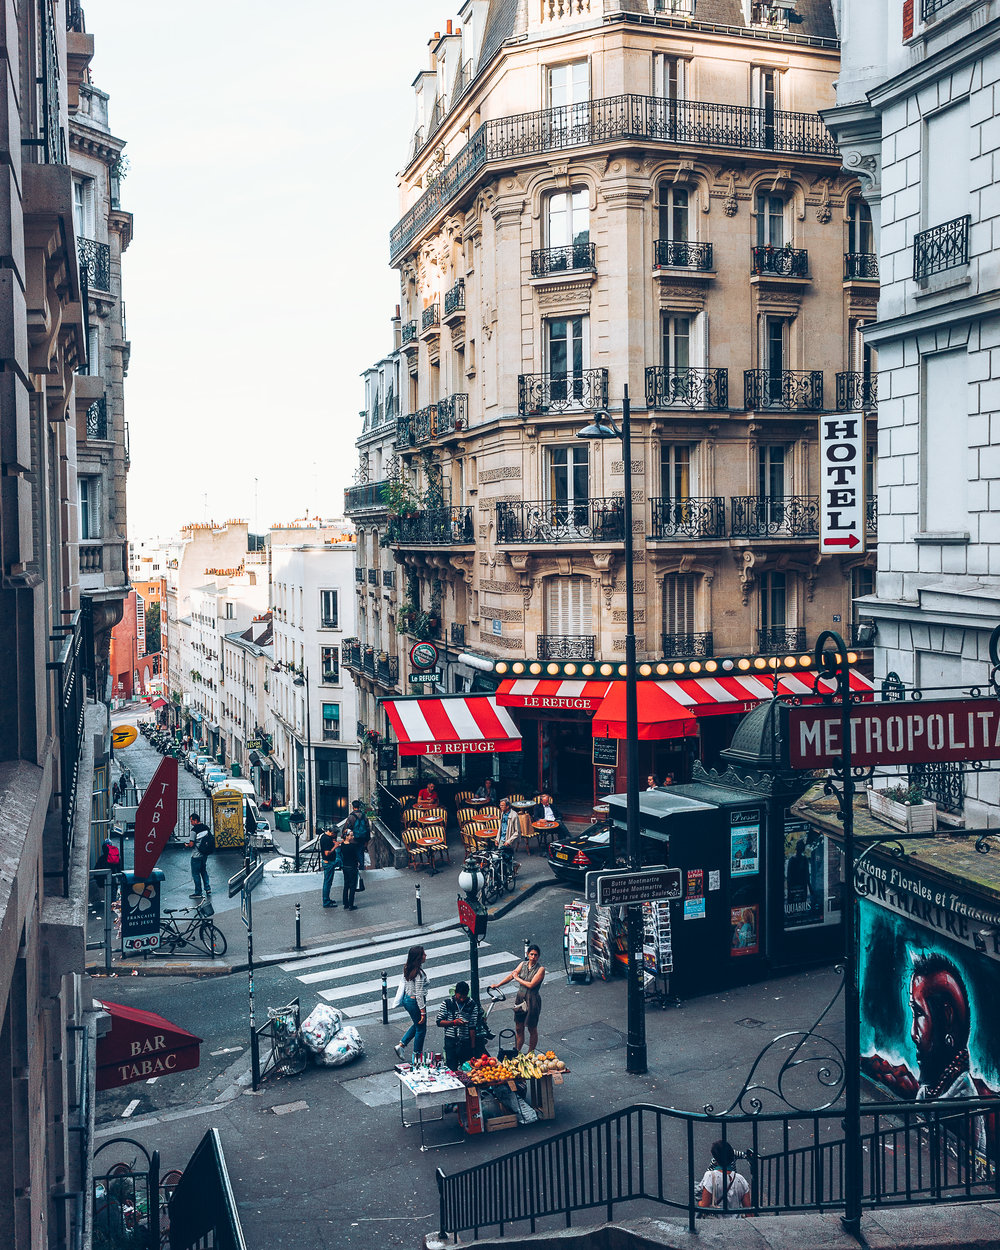 Parisian street life during the #DxOOneTrip, shot with the @dxoone camera